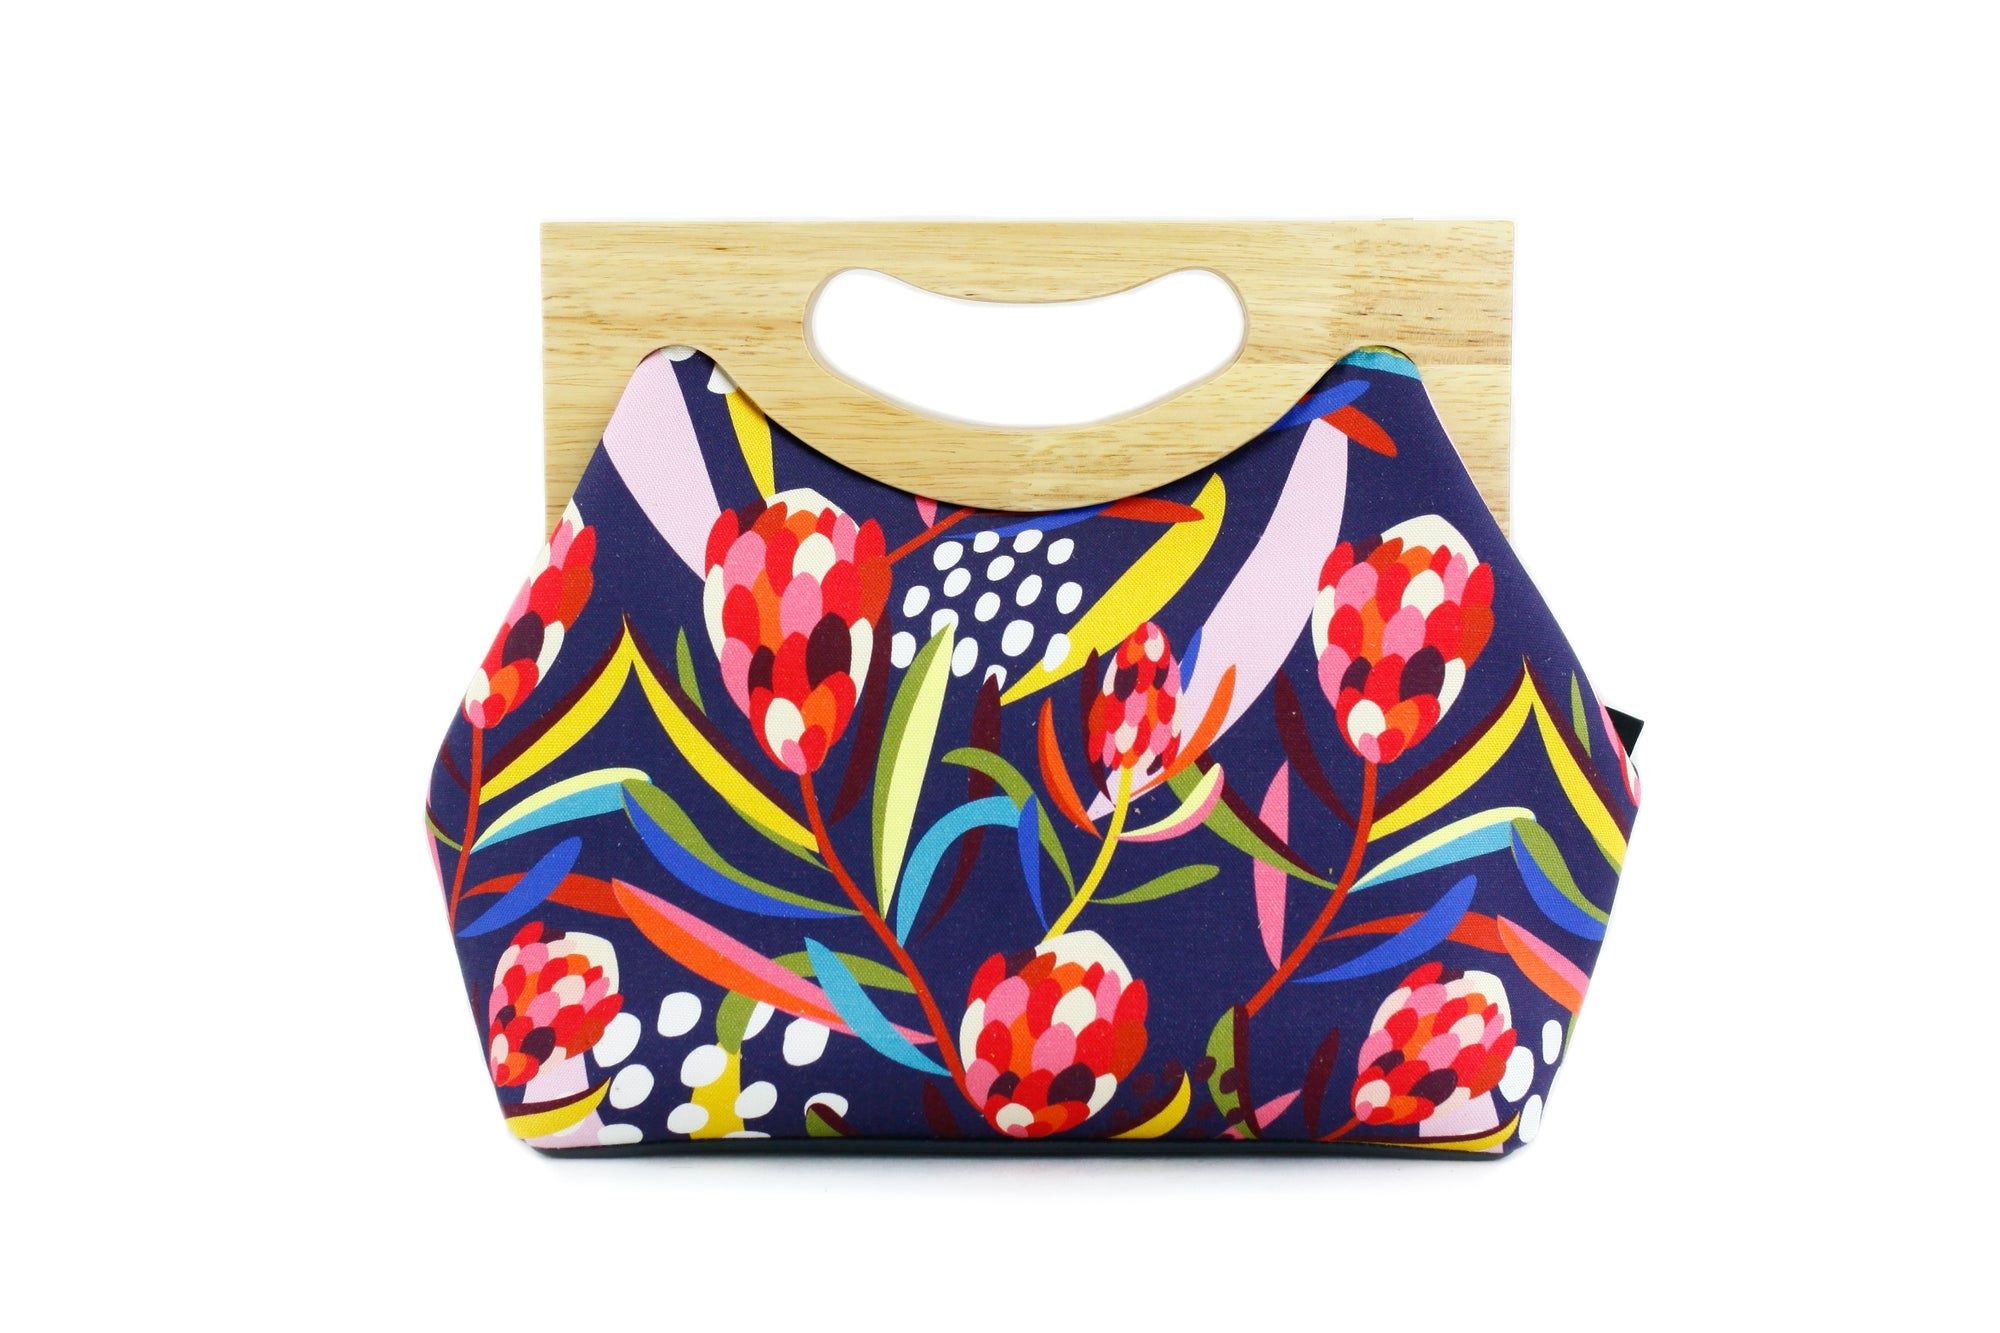 Abstract Protea Navy Flower Medium Women's Clutch Bag | PINKOASIS